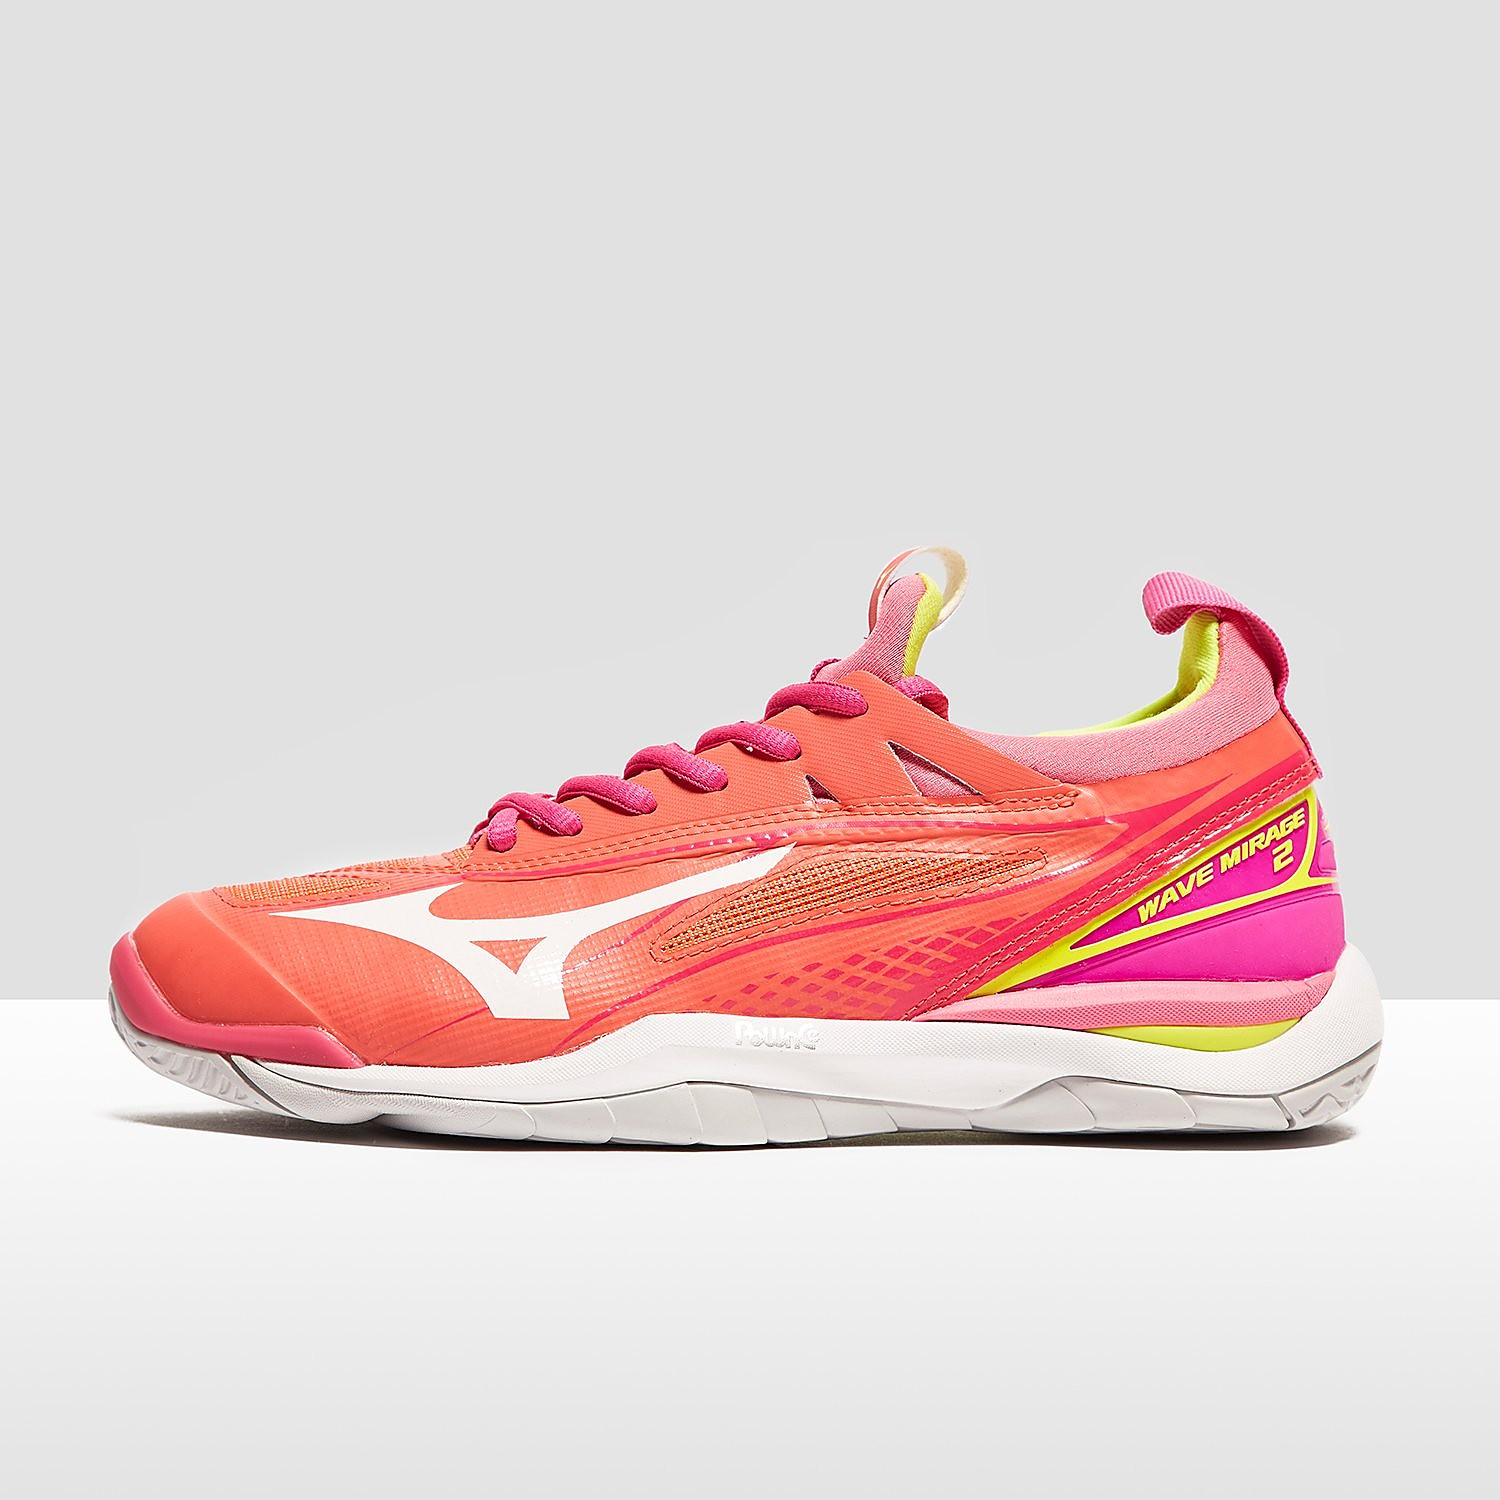 Mizuno Wave Mirage 2 Women's Netball Shoes